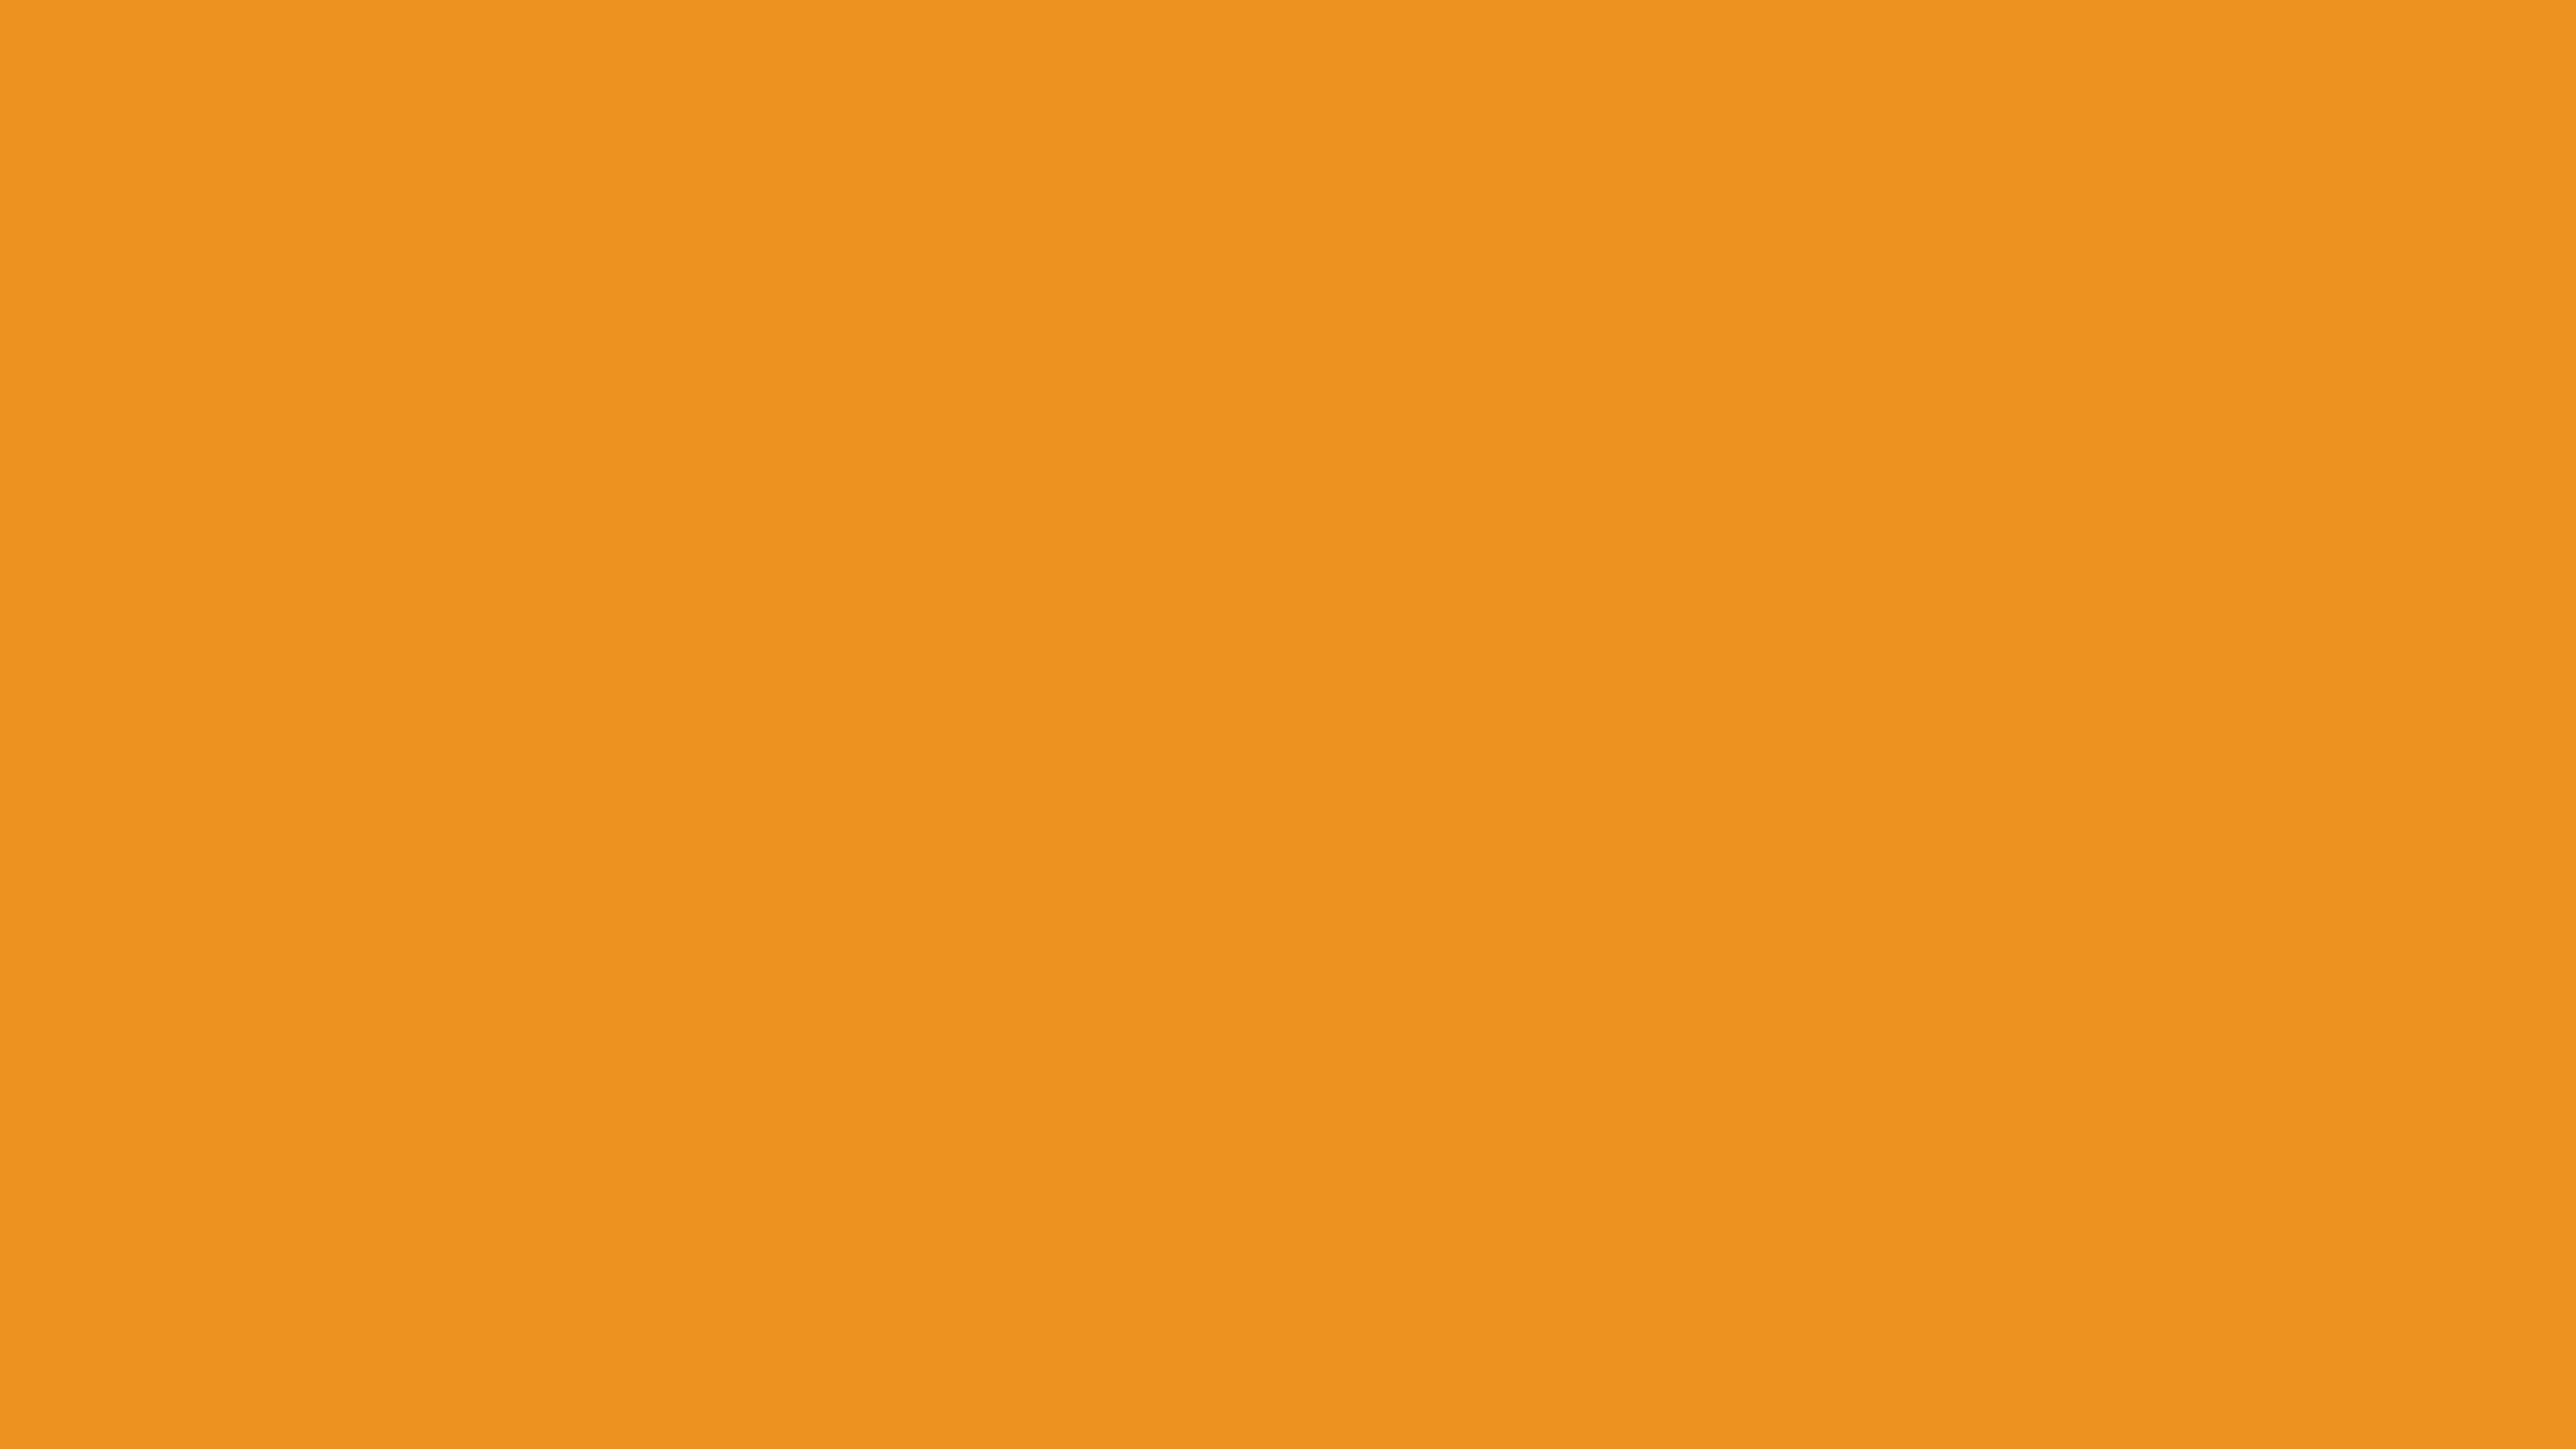 7680x4320 Carrot Orange Solid Color Background